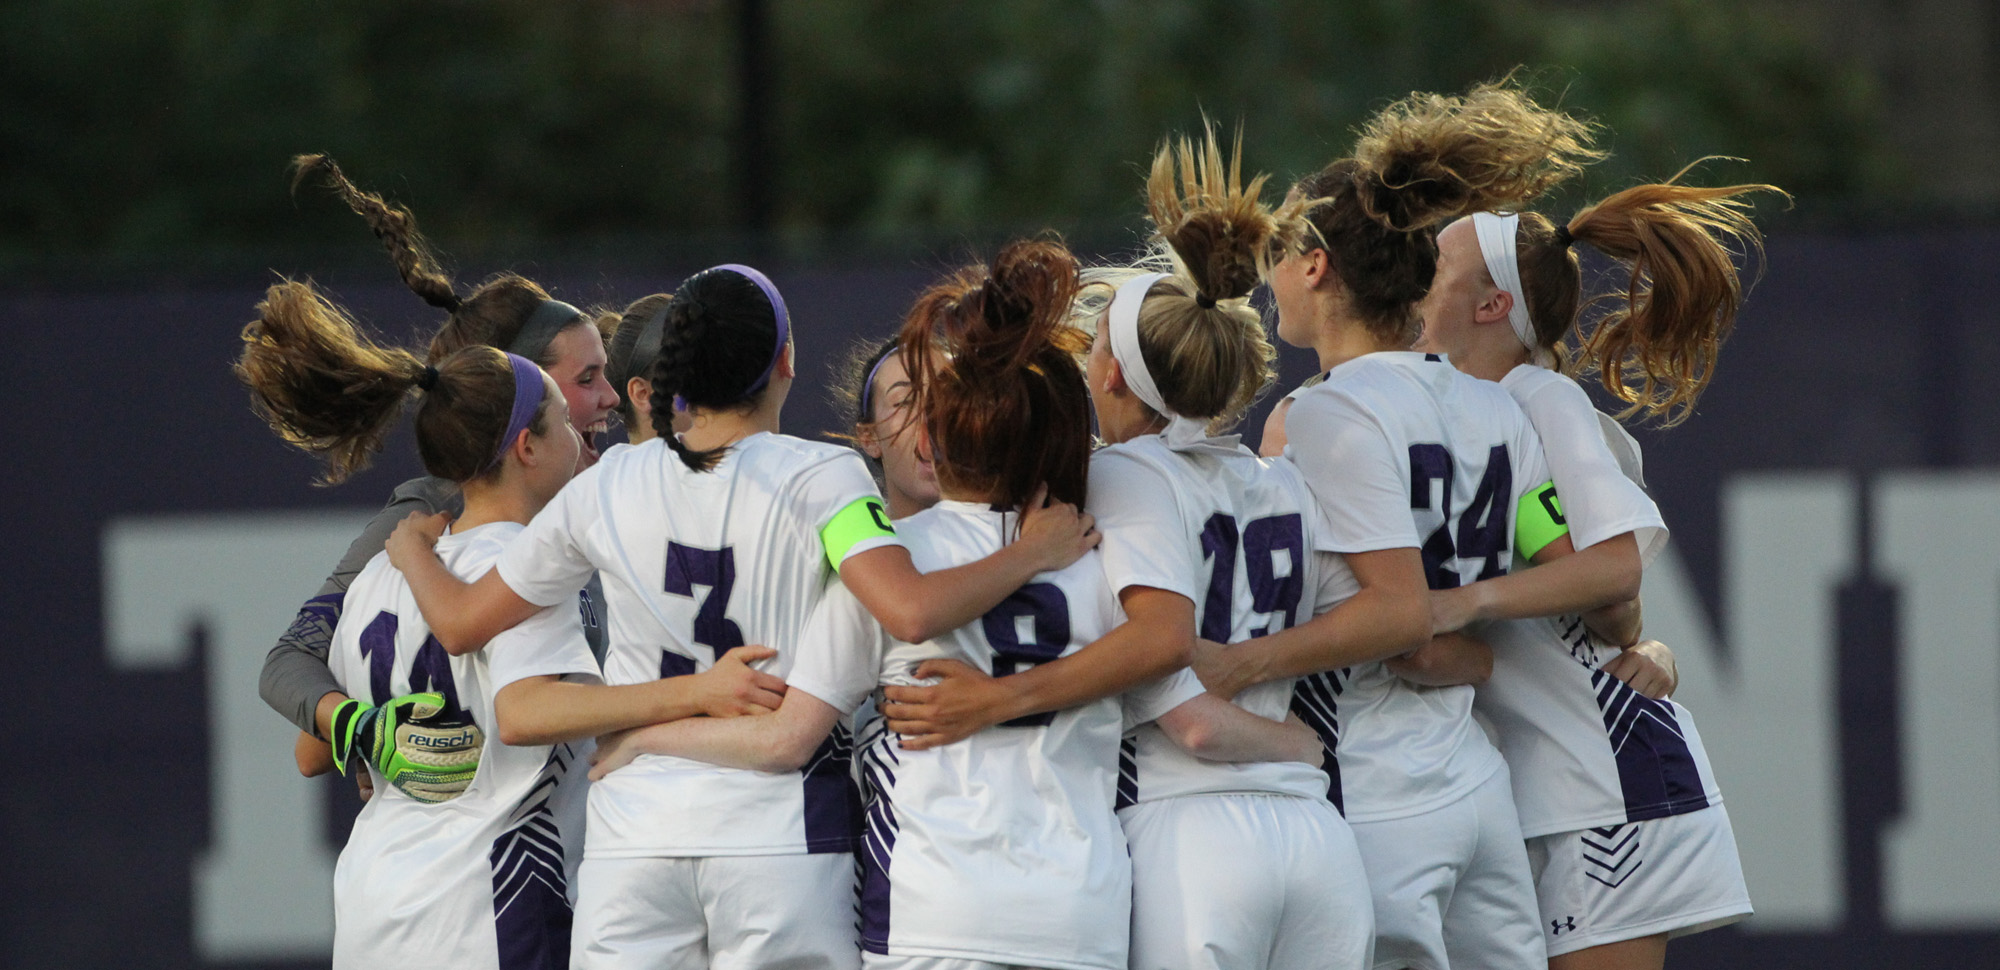 The women's soccer team will take on Arcadia in the first round of the NCAA Tournament on Saturday.